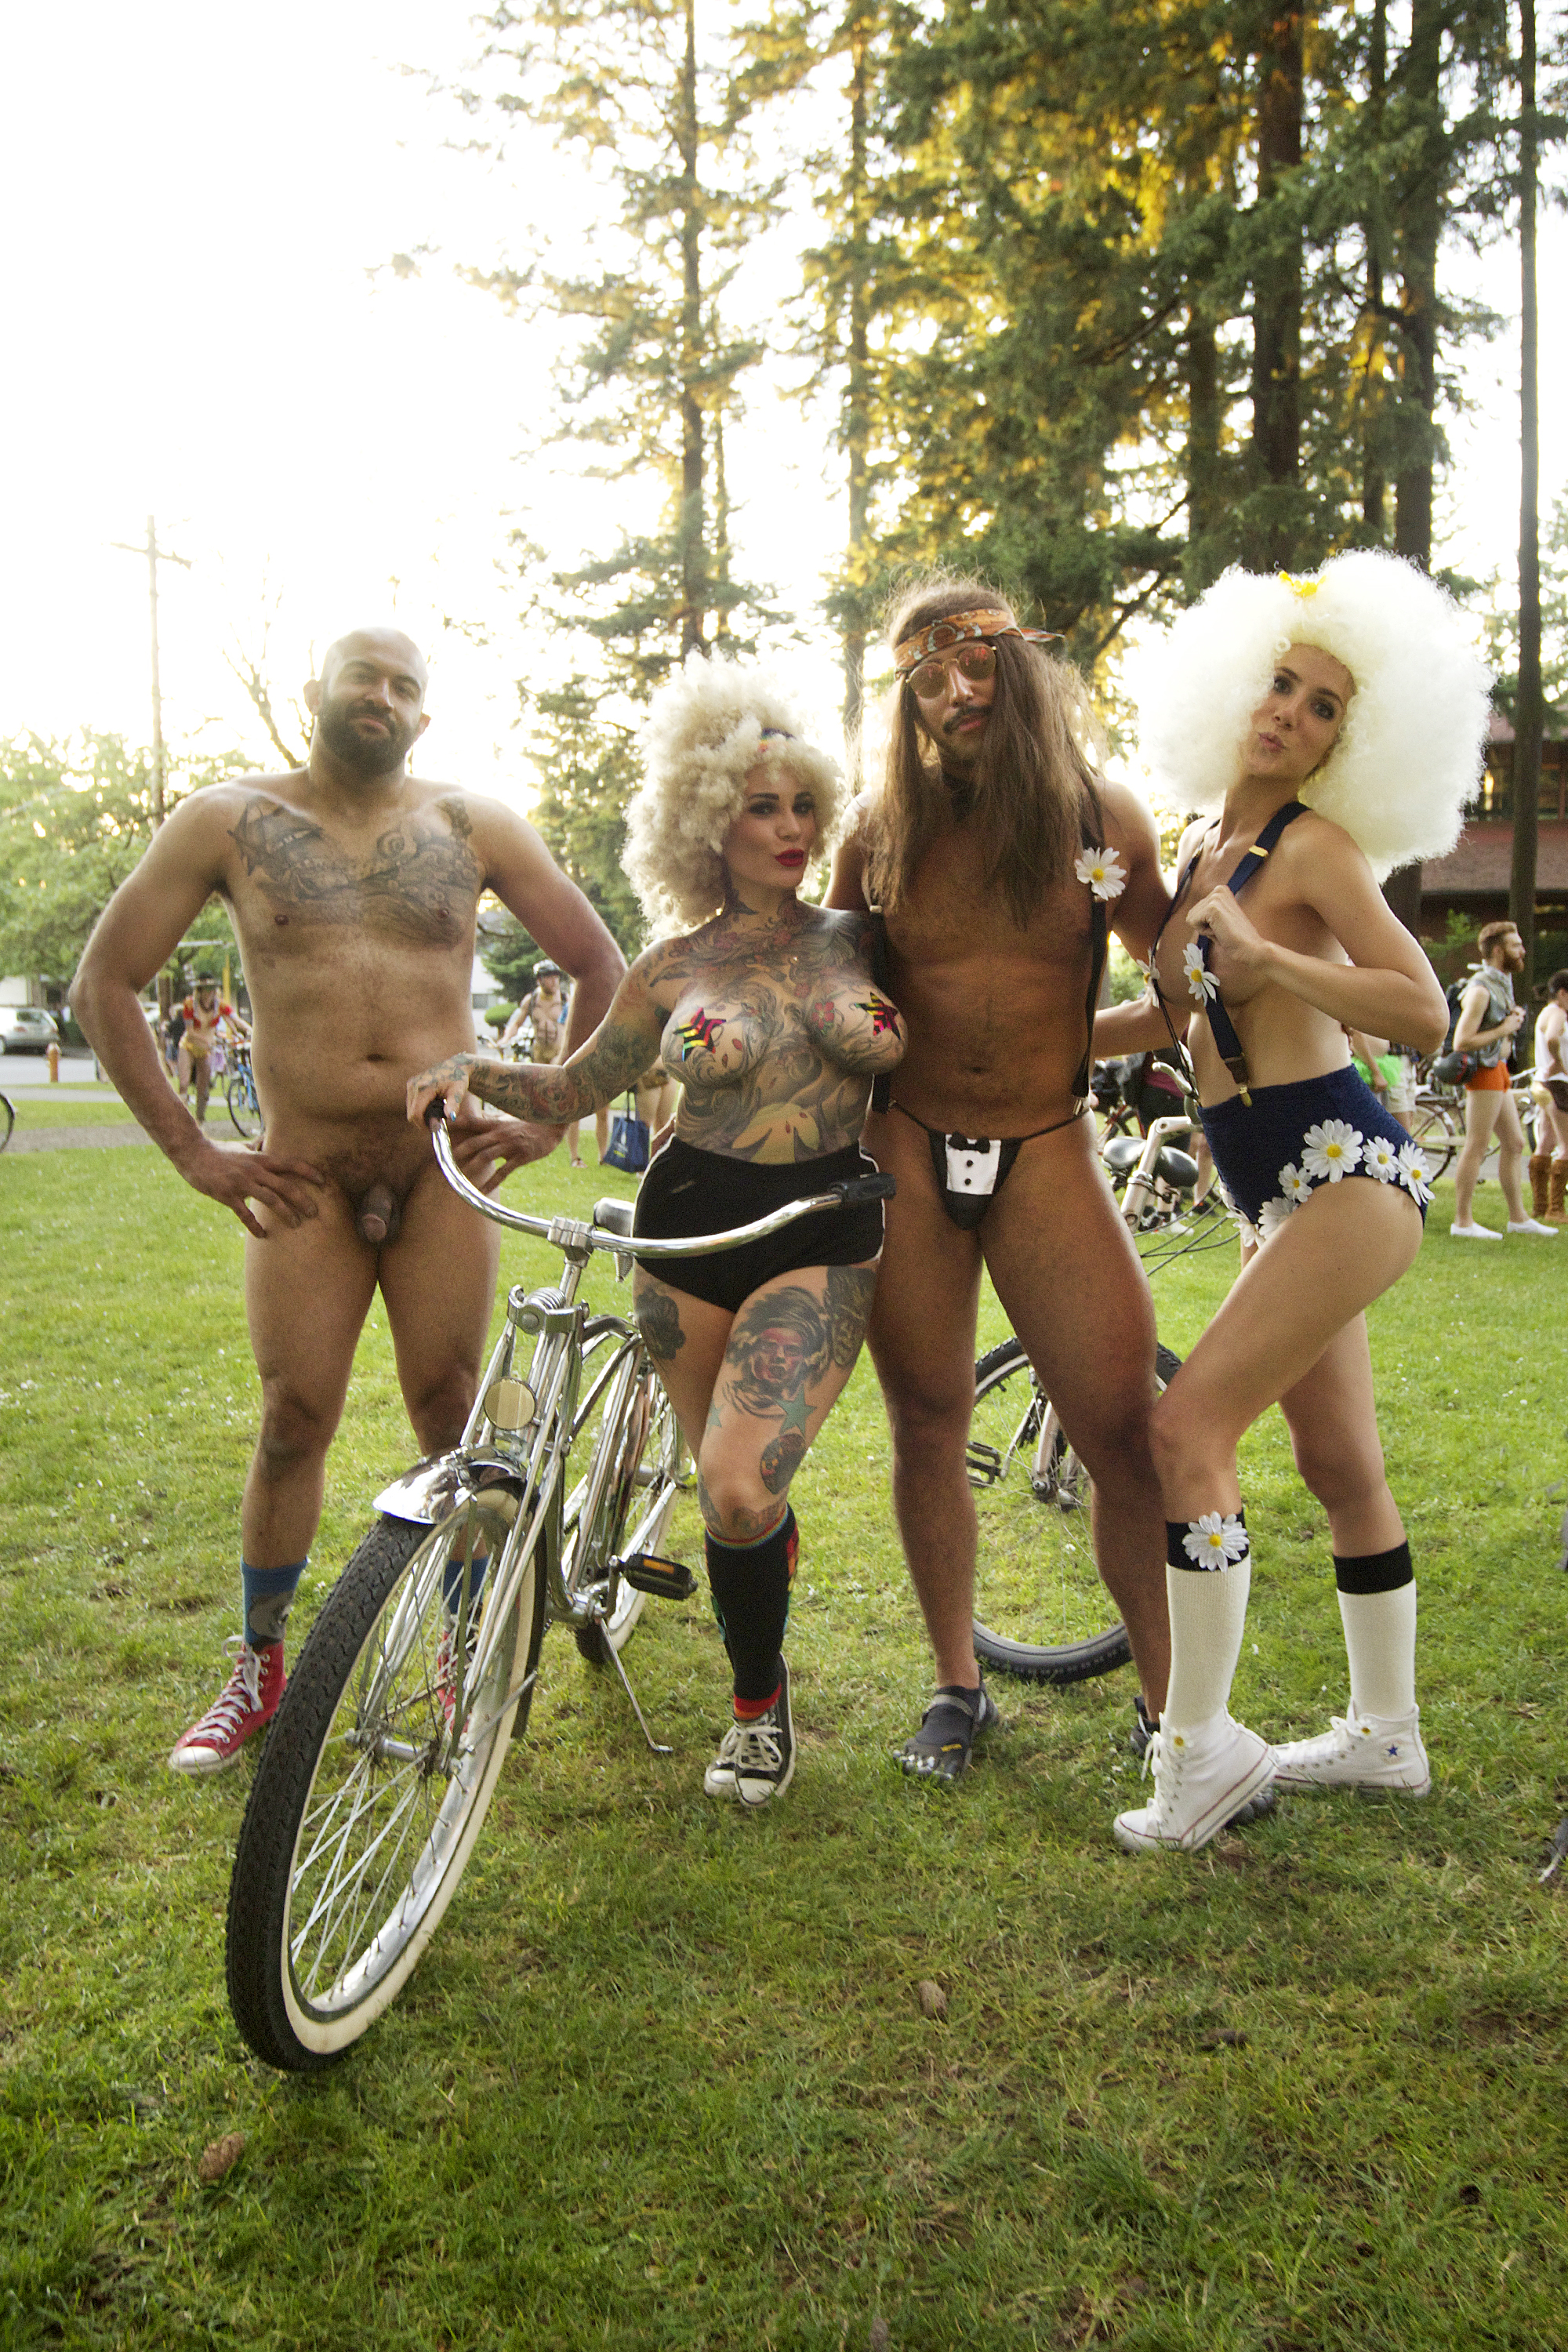 WNBR_WorldNakedBikeRide2016_JeffWalls_DSC4198